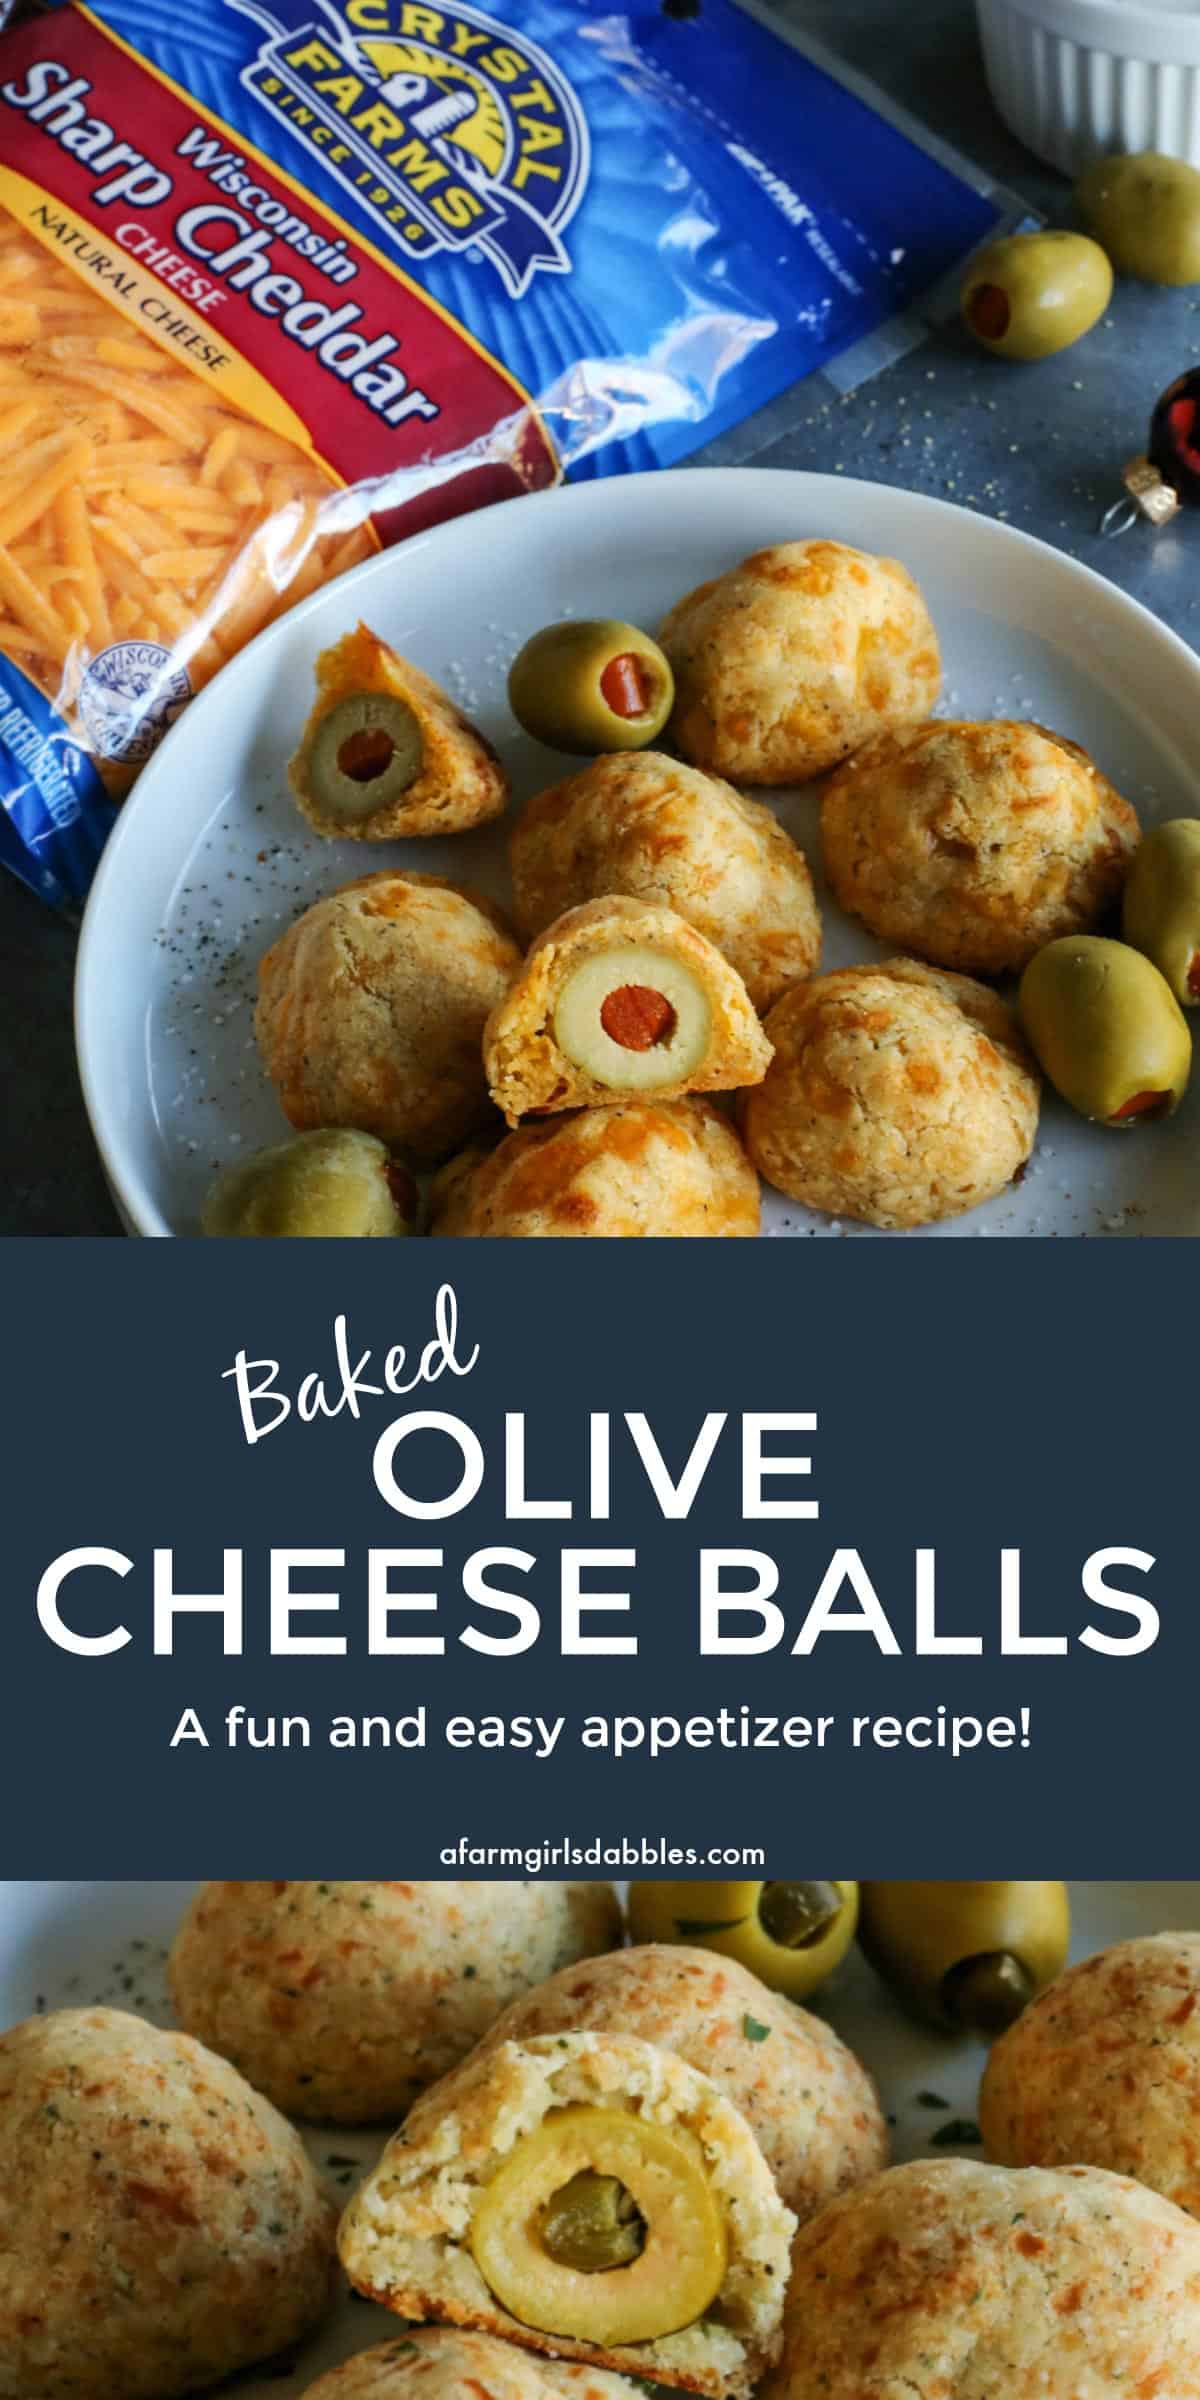 pinterest image of baked olive cheese balls on a plate - with a cup of buttermilk ranch dip and package of Crystal Farms Sharp Cheddar cheese on the side